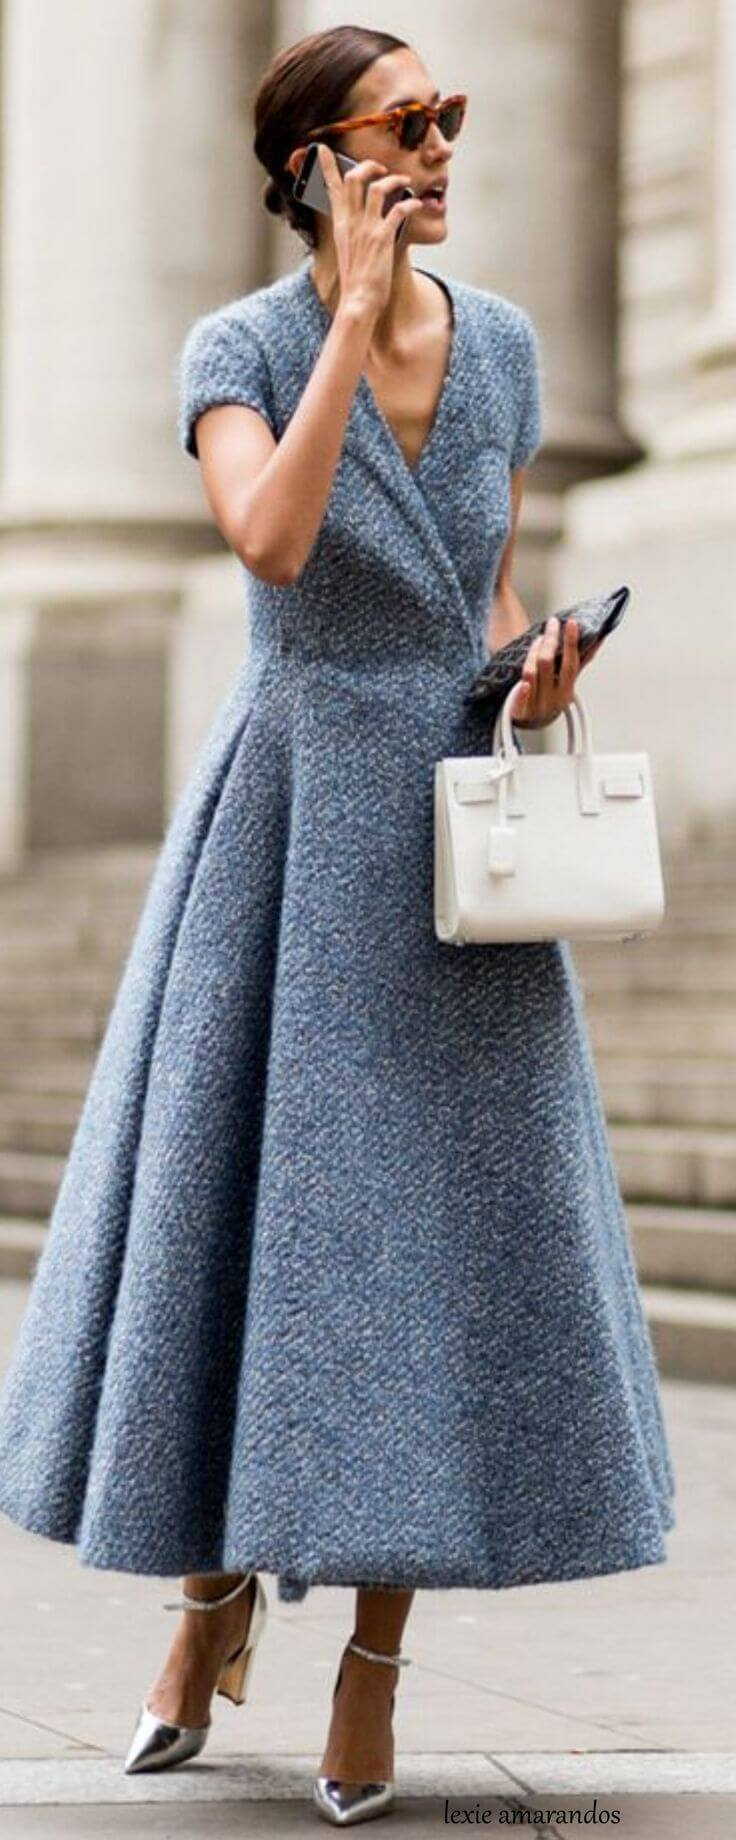 Elegant woman in a cold stone blue wool dress